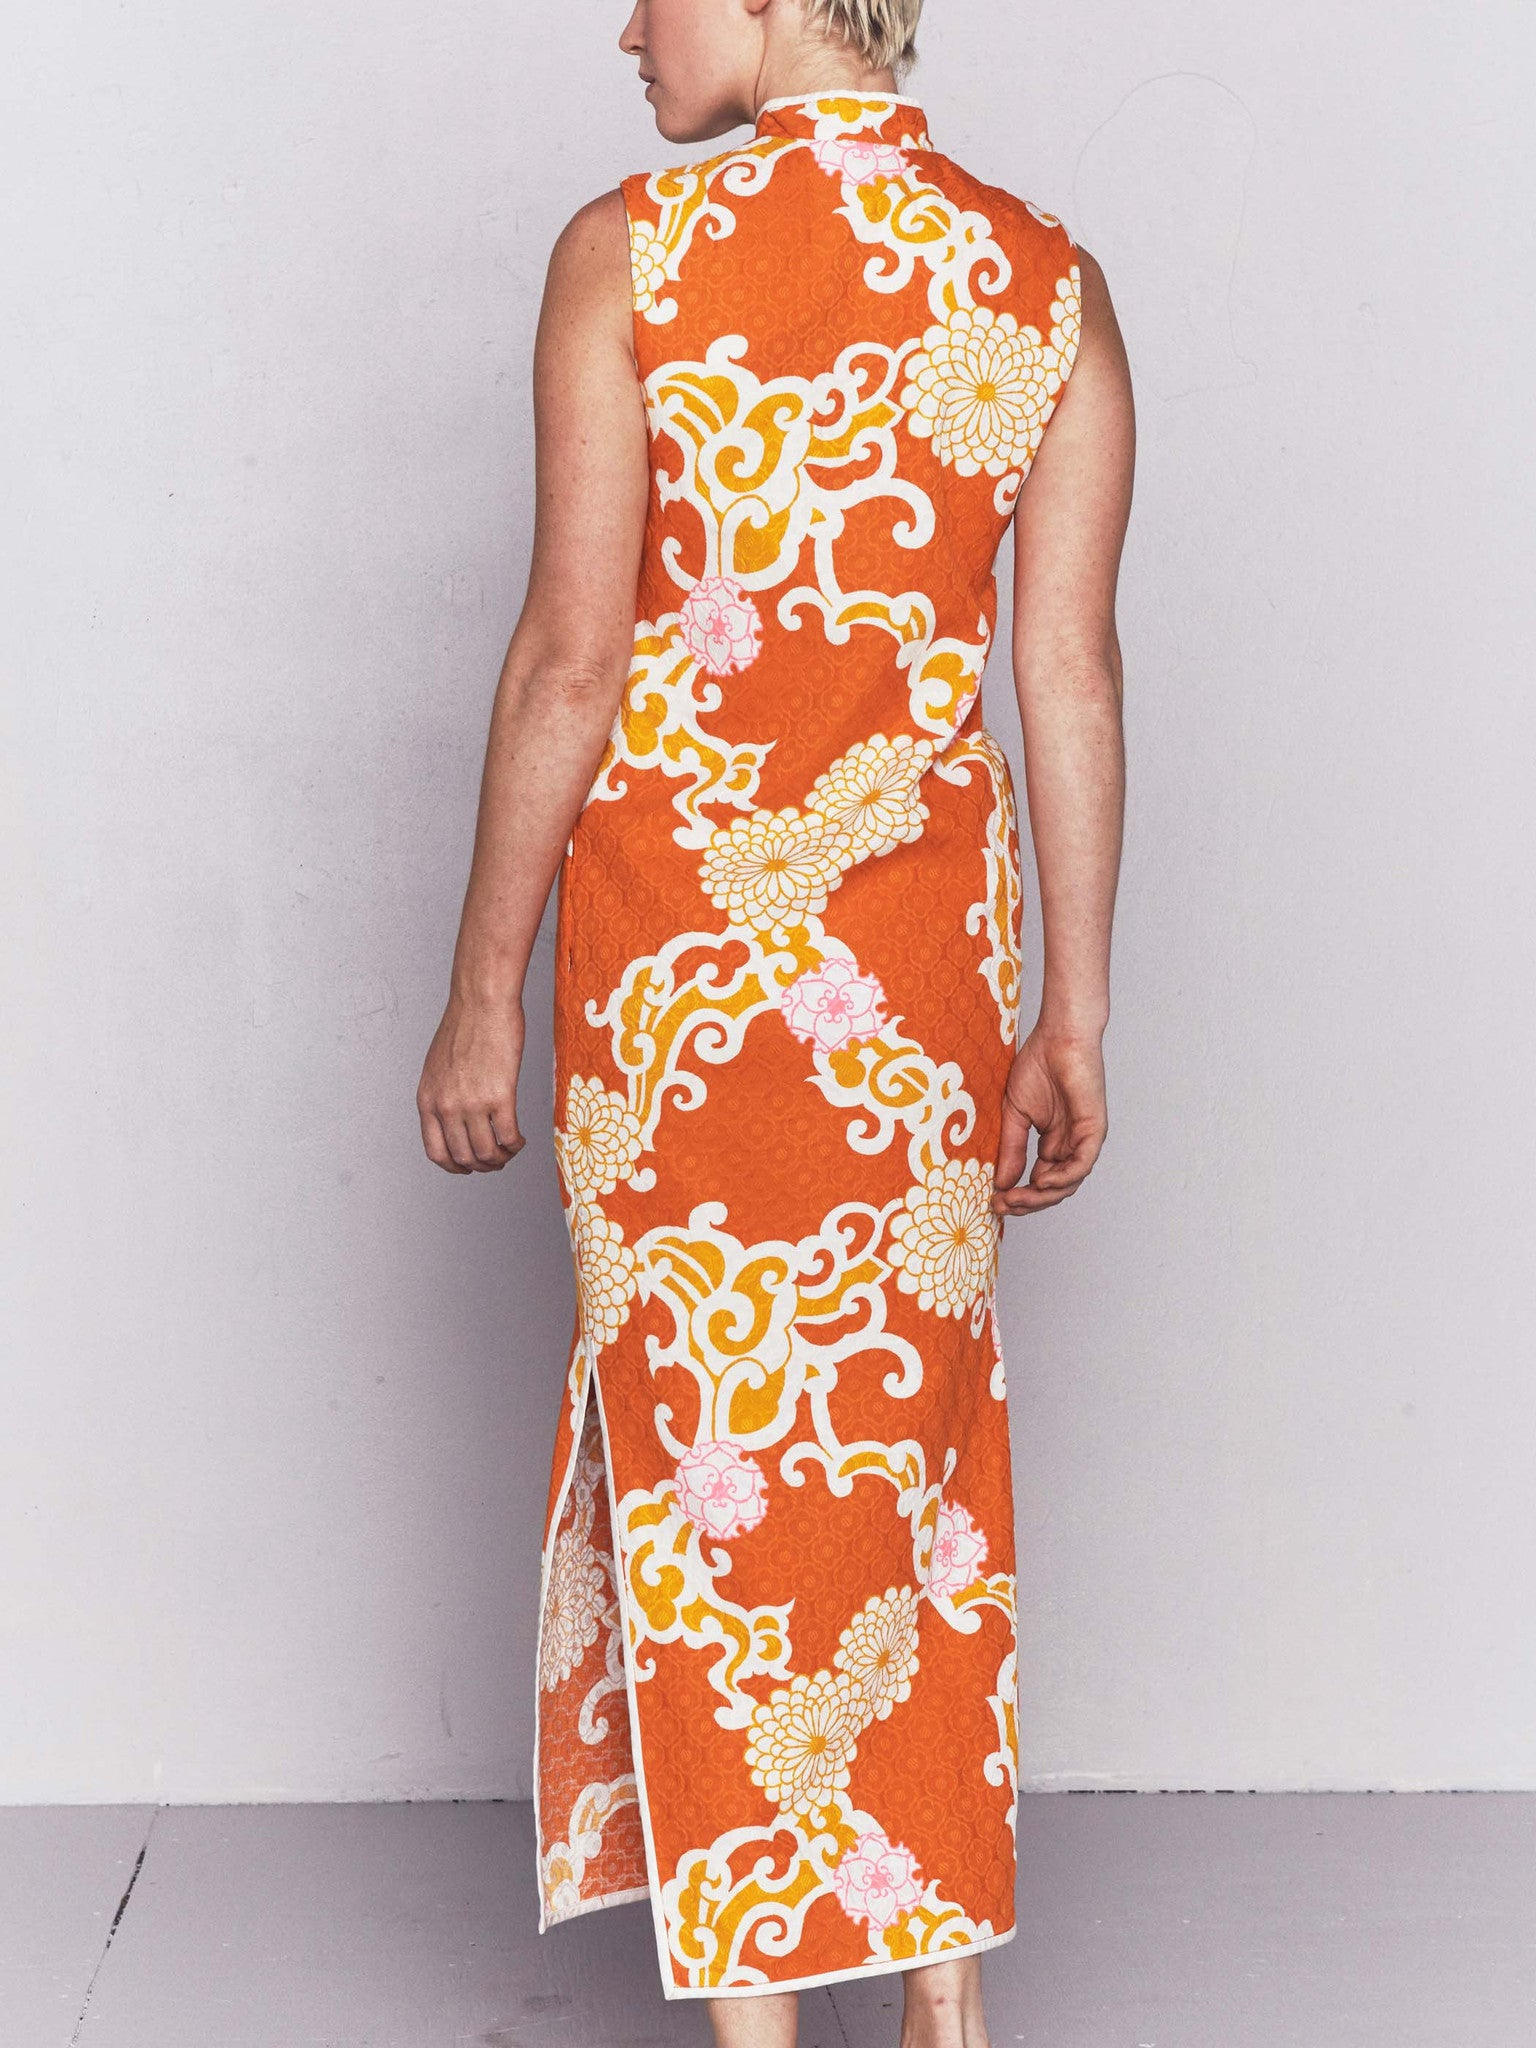 Vintage 1960s Orange Floral Cheongsam